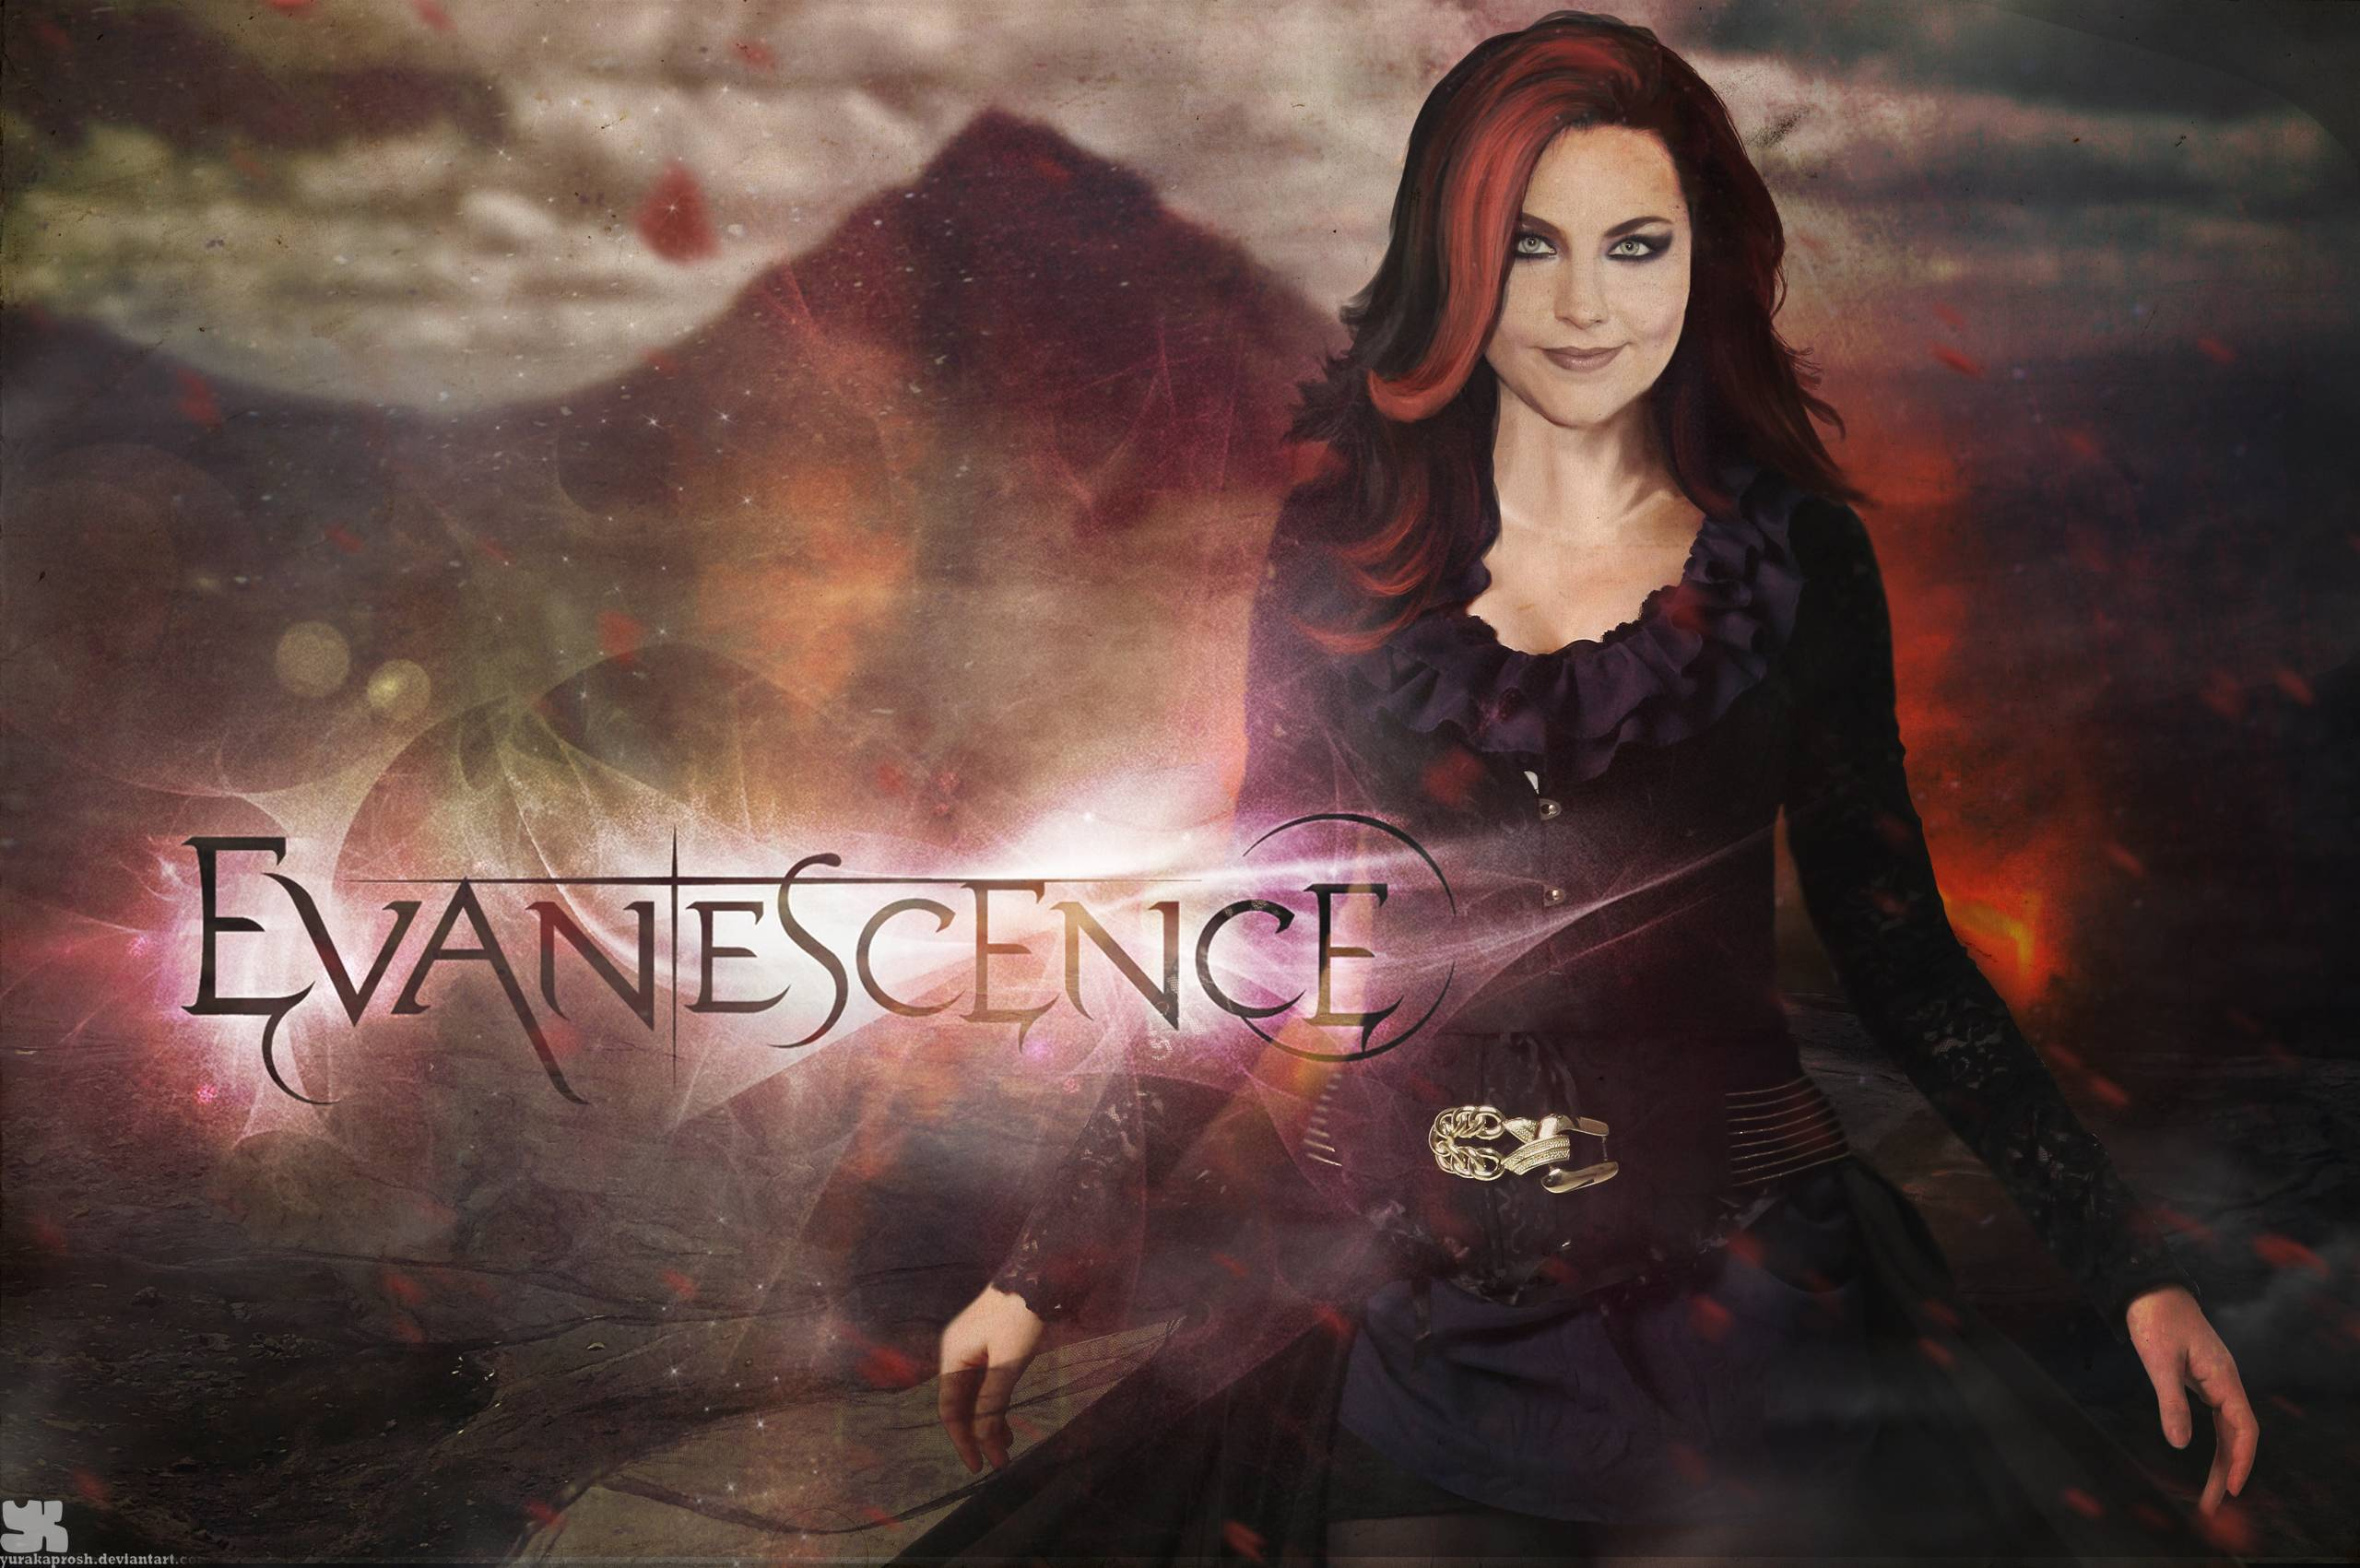 Evanescence Wallpapers 2015 2560x1701